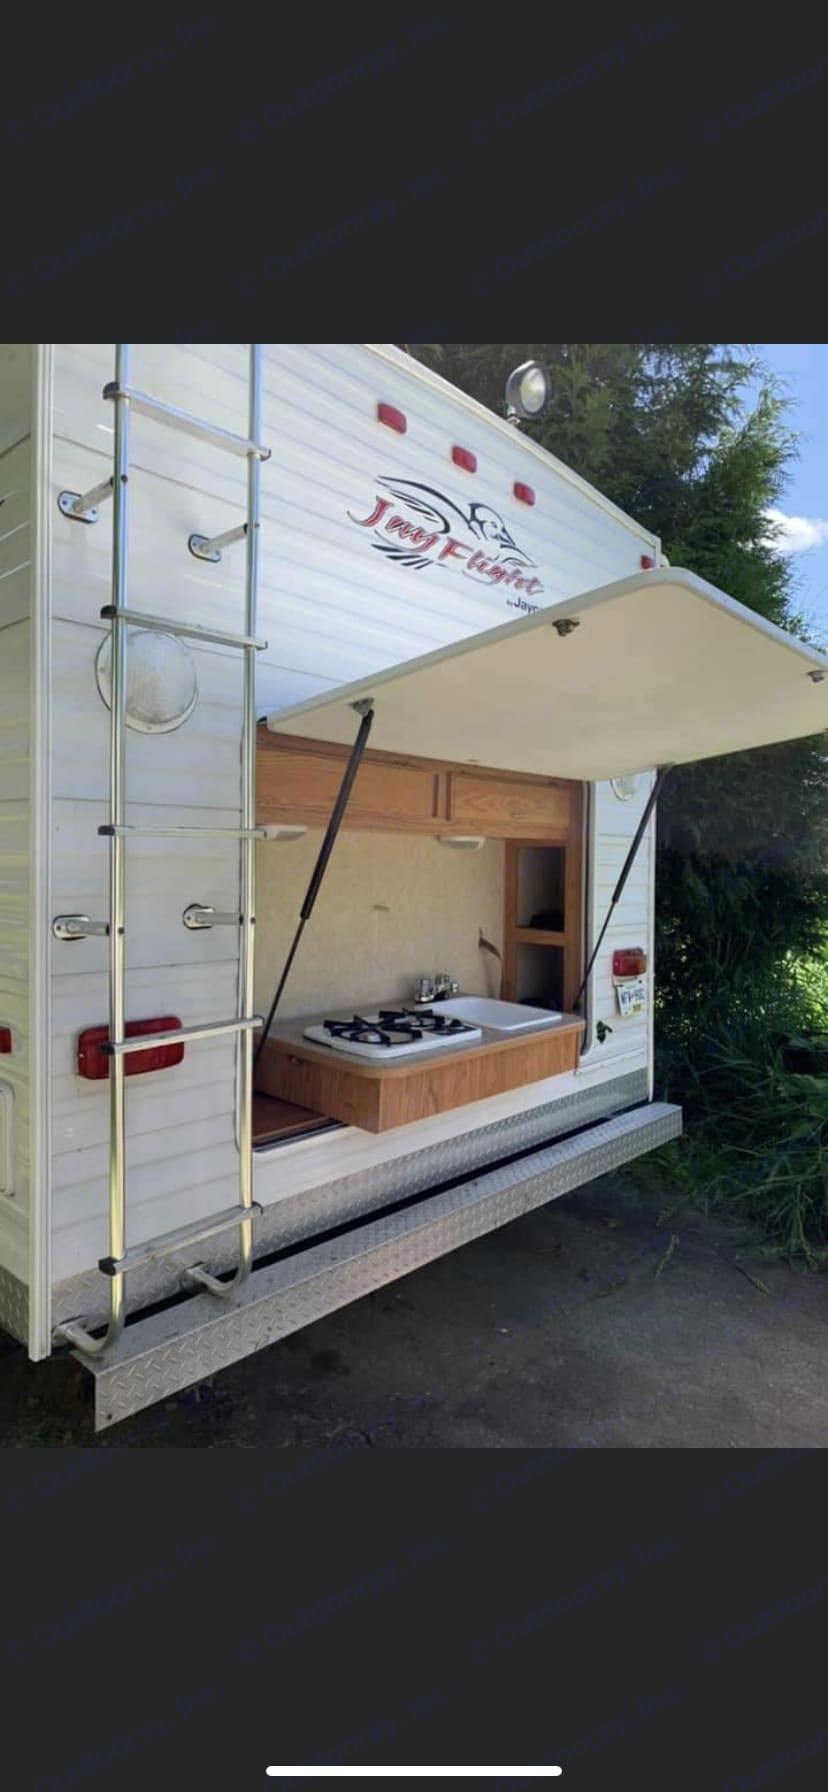 Outdoor propane stove and sink. Jayco Jay Flight 2005